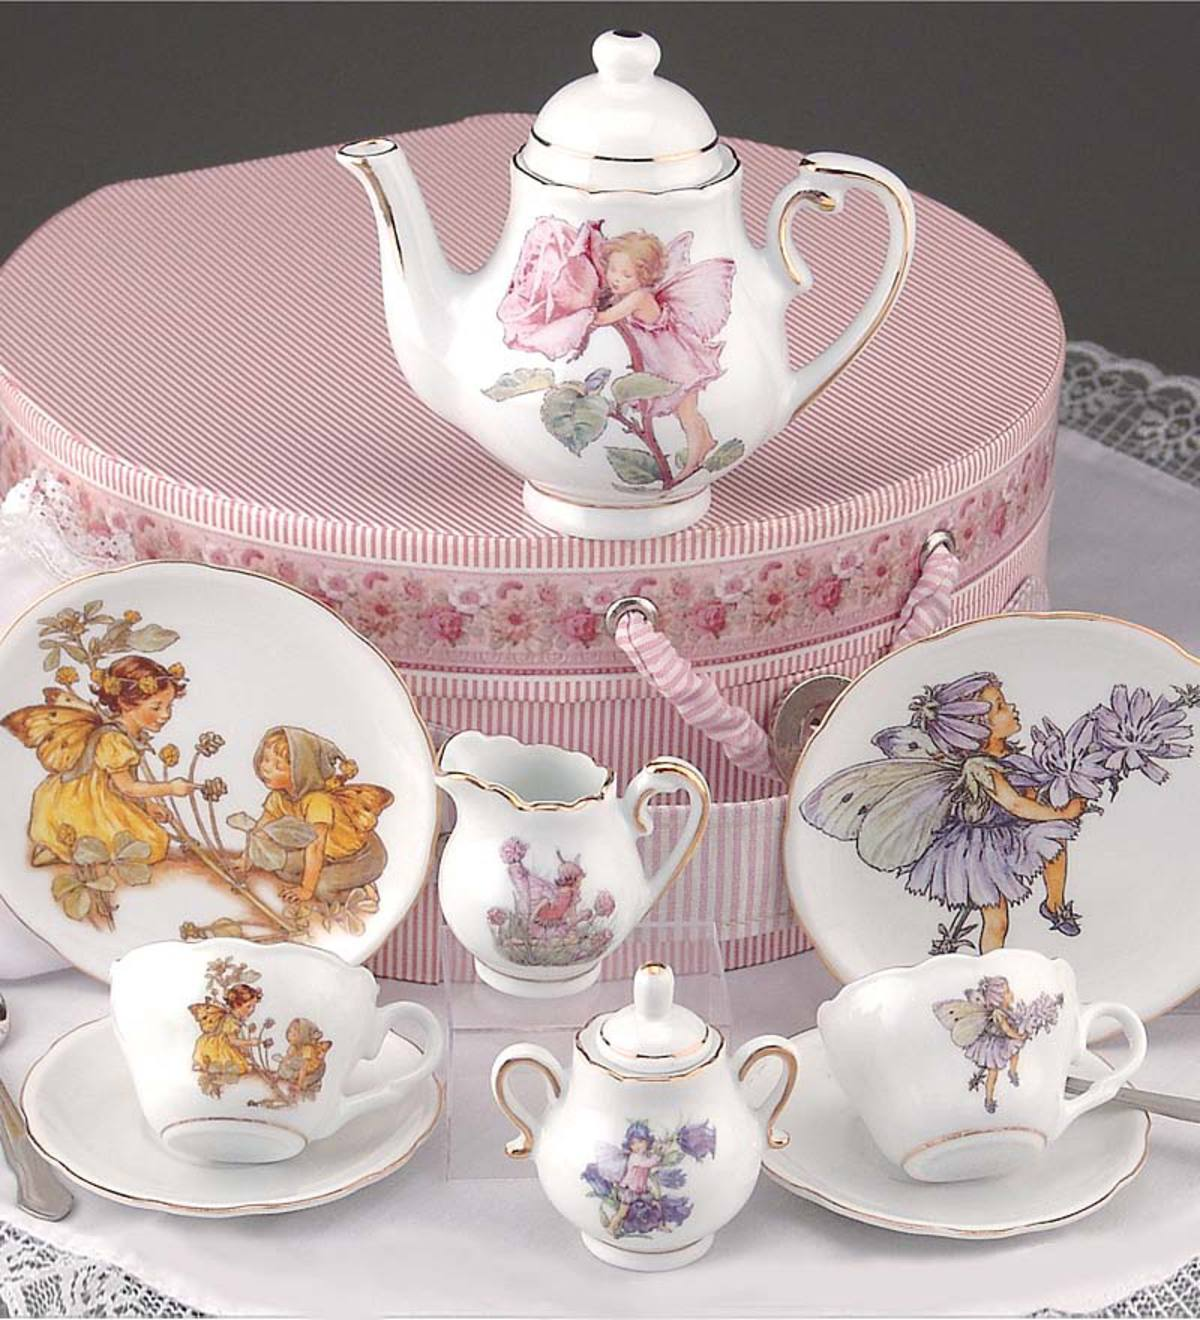 Dishwasher Safe Porcelain Flower Fairy Tea Set with Custom Hatbox Storage Container